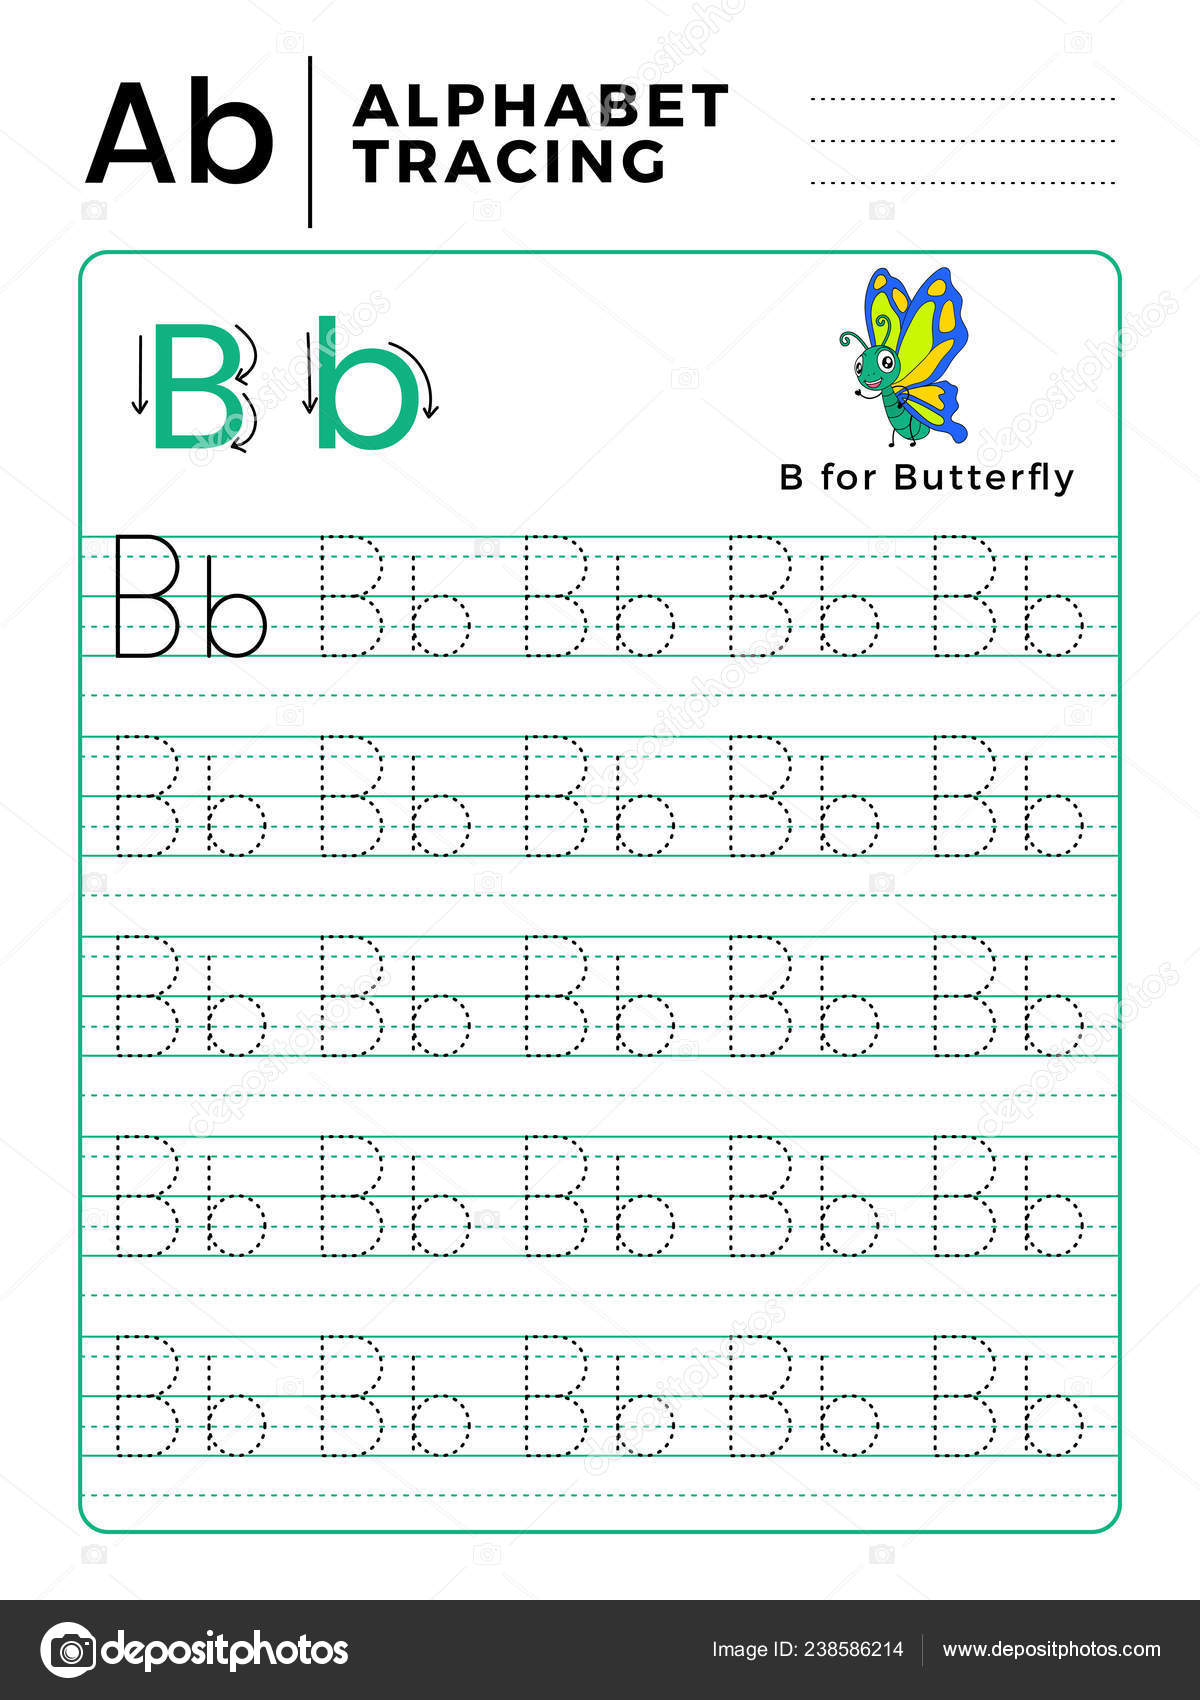 Letter Alphabet Tracing Book Example Funny Butterfly Cartoon ...